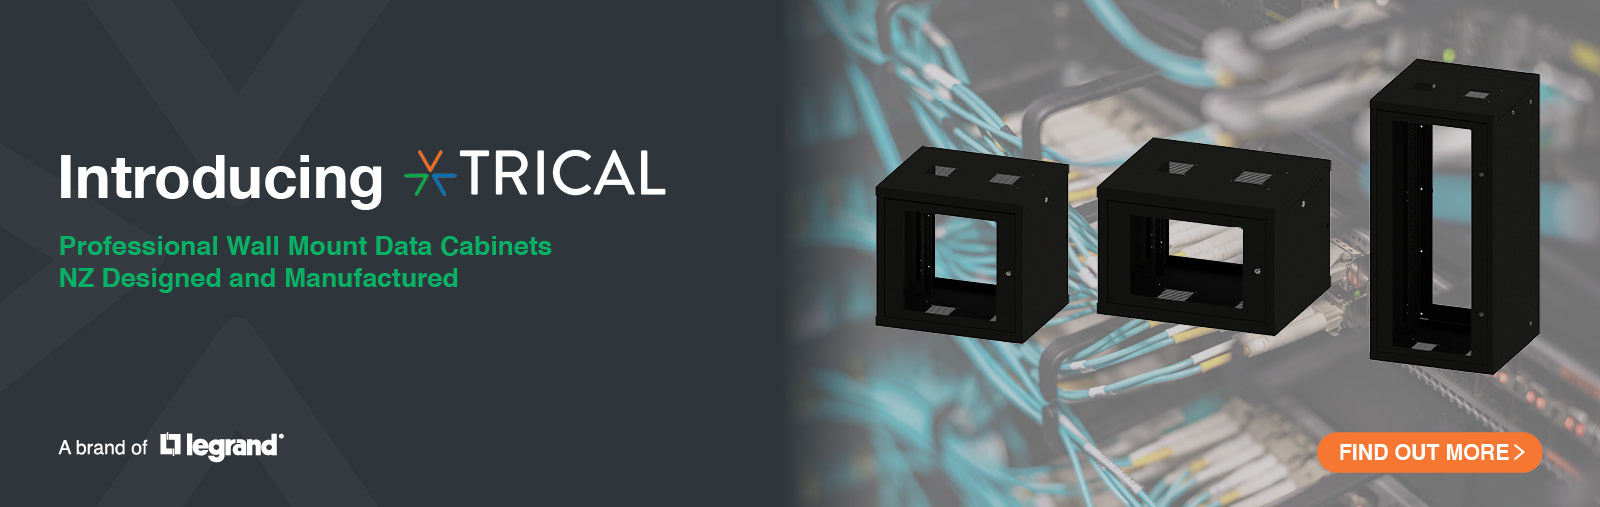 Introducing Trical. Professional Wall Mount Data Cabinets